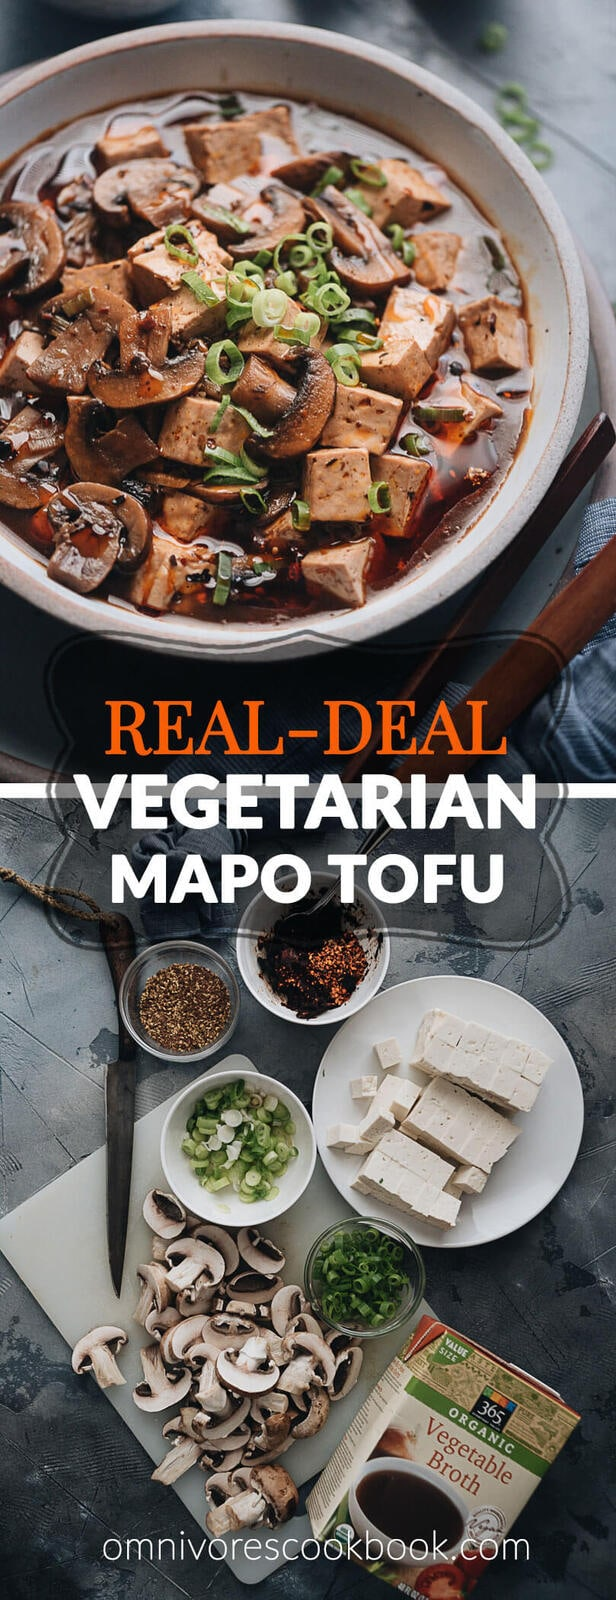 Vegetarian mapo tofu - So easy to make and irresistibly delicious. The tender tofu and mushrooms are simmered in a rich sauce that's bursting with flavor. If you want the authentic Chinese restaurant experience, look no further! #vegan #recipe #healthy